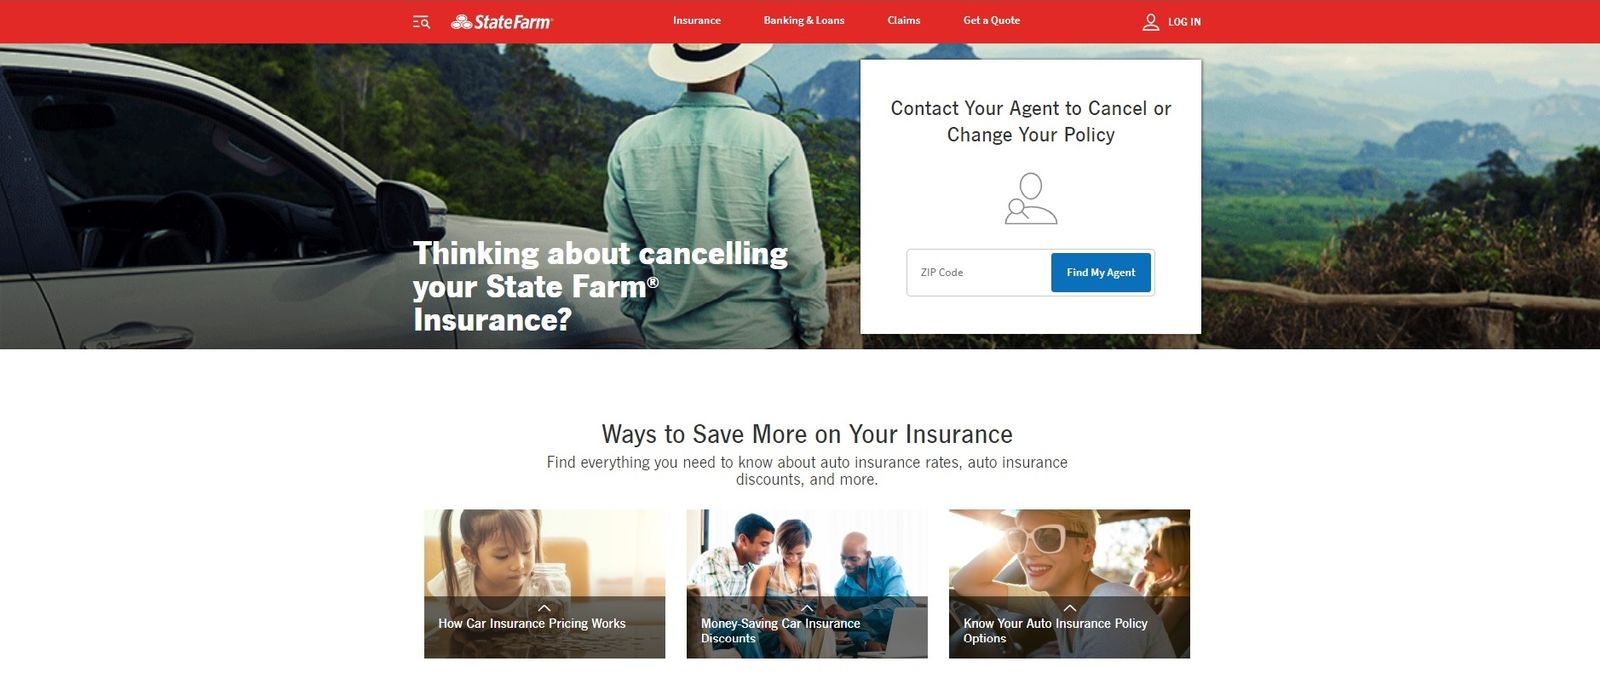 Statefarm cancellation page